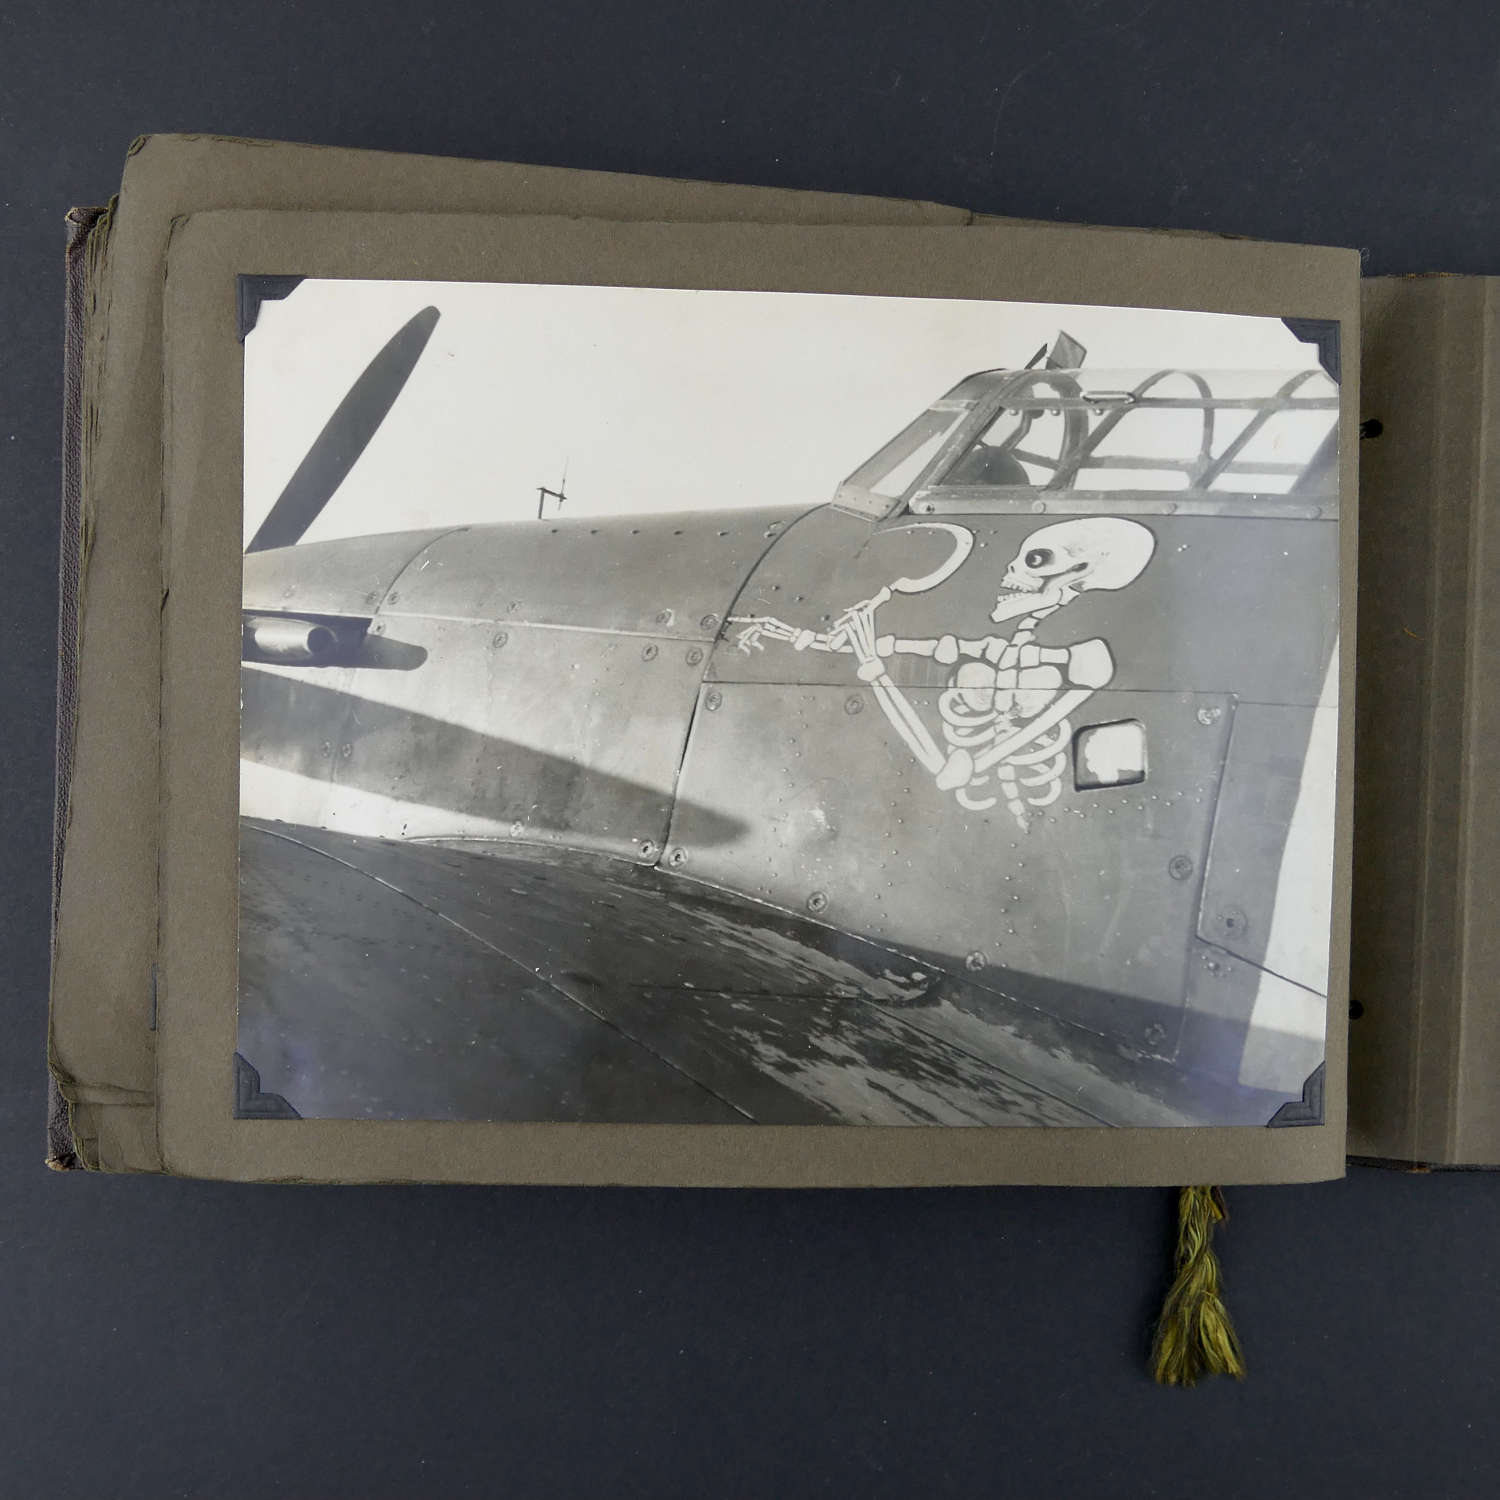 RAF photograph album with 242 Squadron related aircraft content